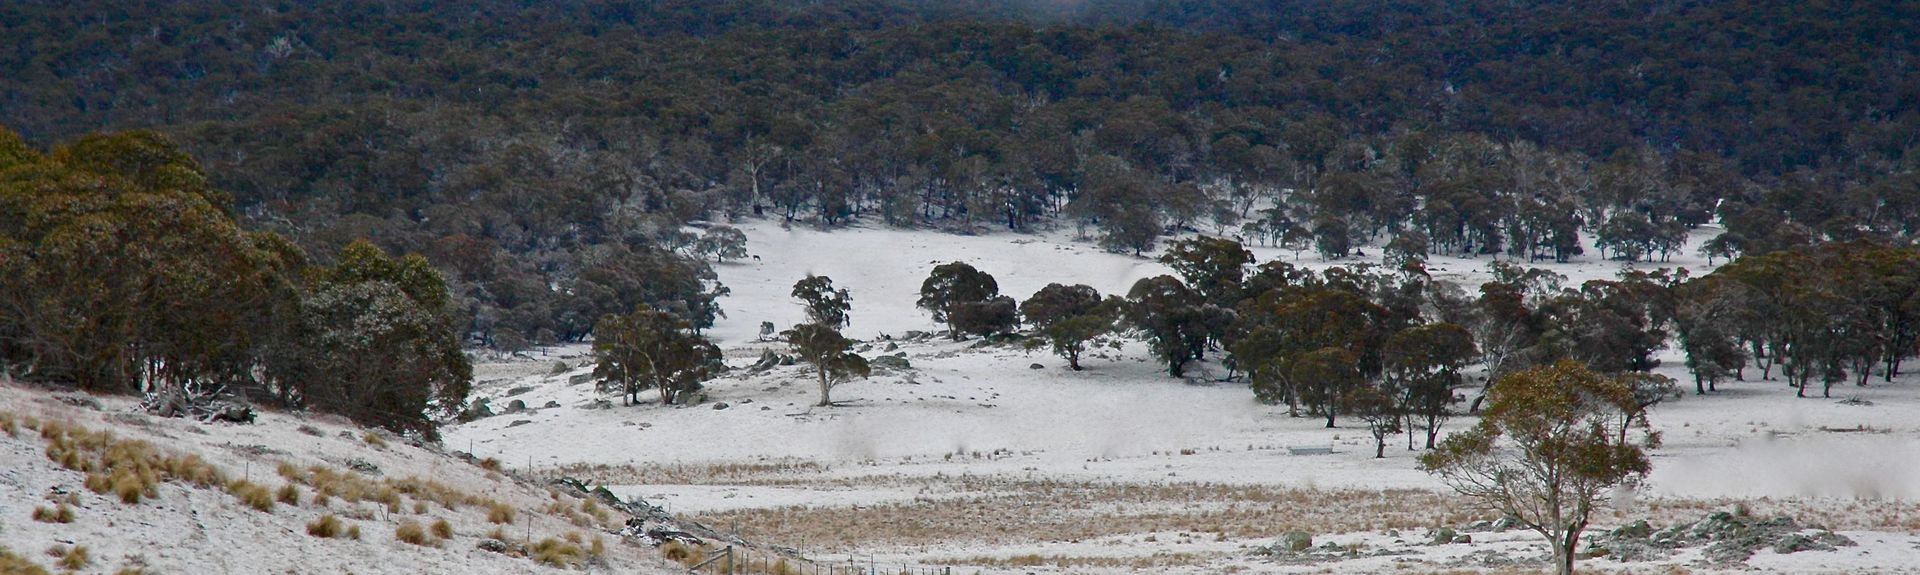 Snowy Mountains, NSW, Australia